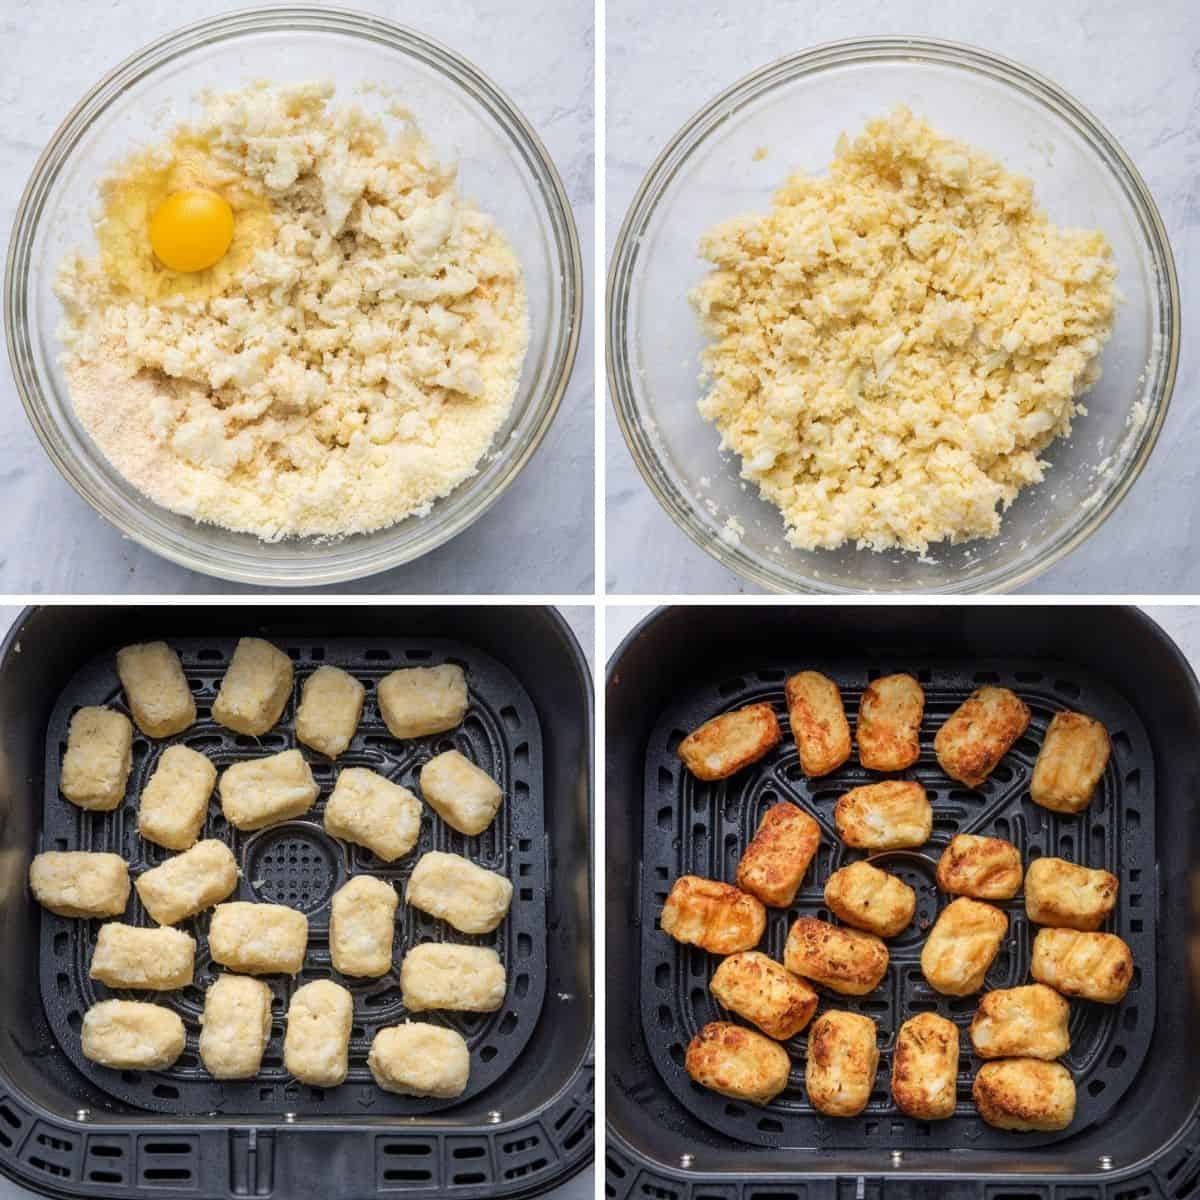 4 image collage to show bowl of ingredients before mixing, after mixing, tater tots formed and placed in air fryer before and after cooking